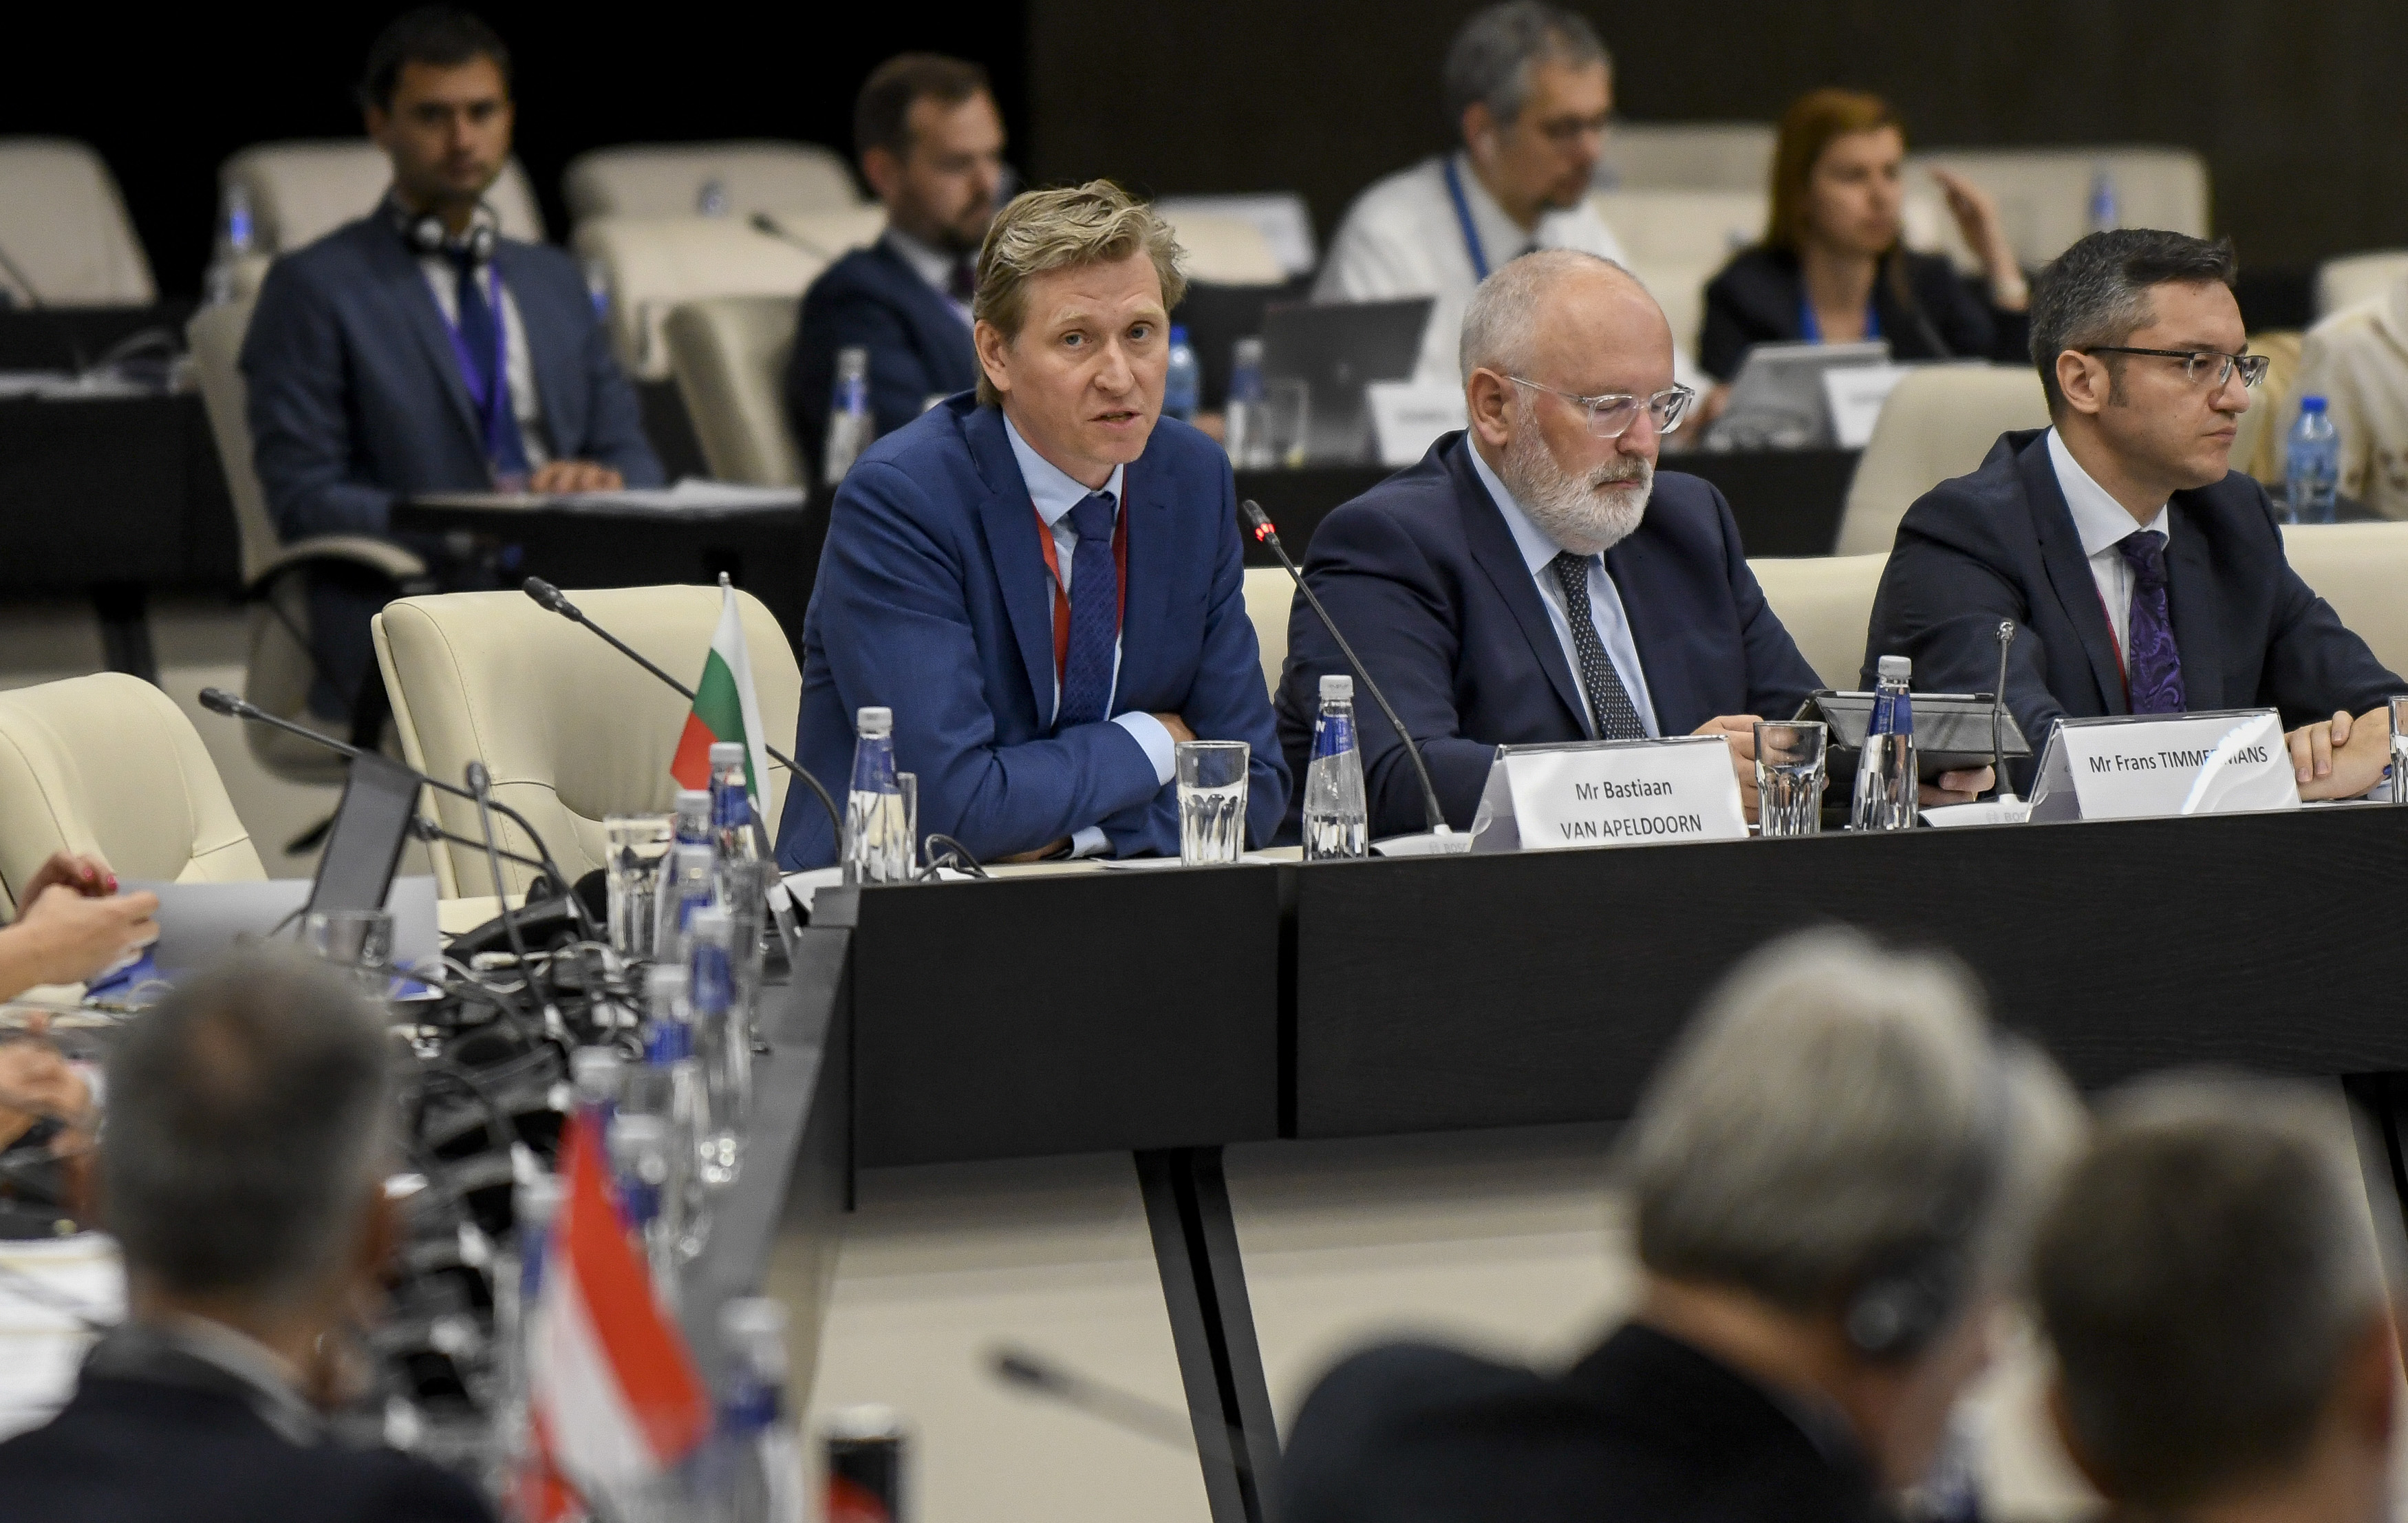 The Plenary Meeting of the Conference of European Affairs Committees of the EU Parliaments ended with the adoption of the forum's Contribution